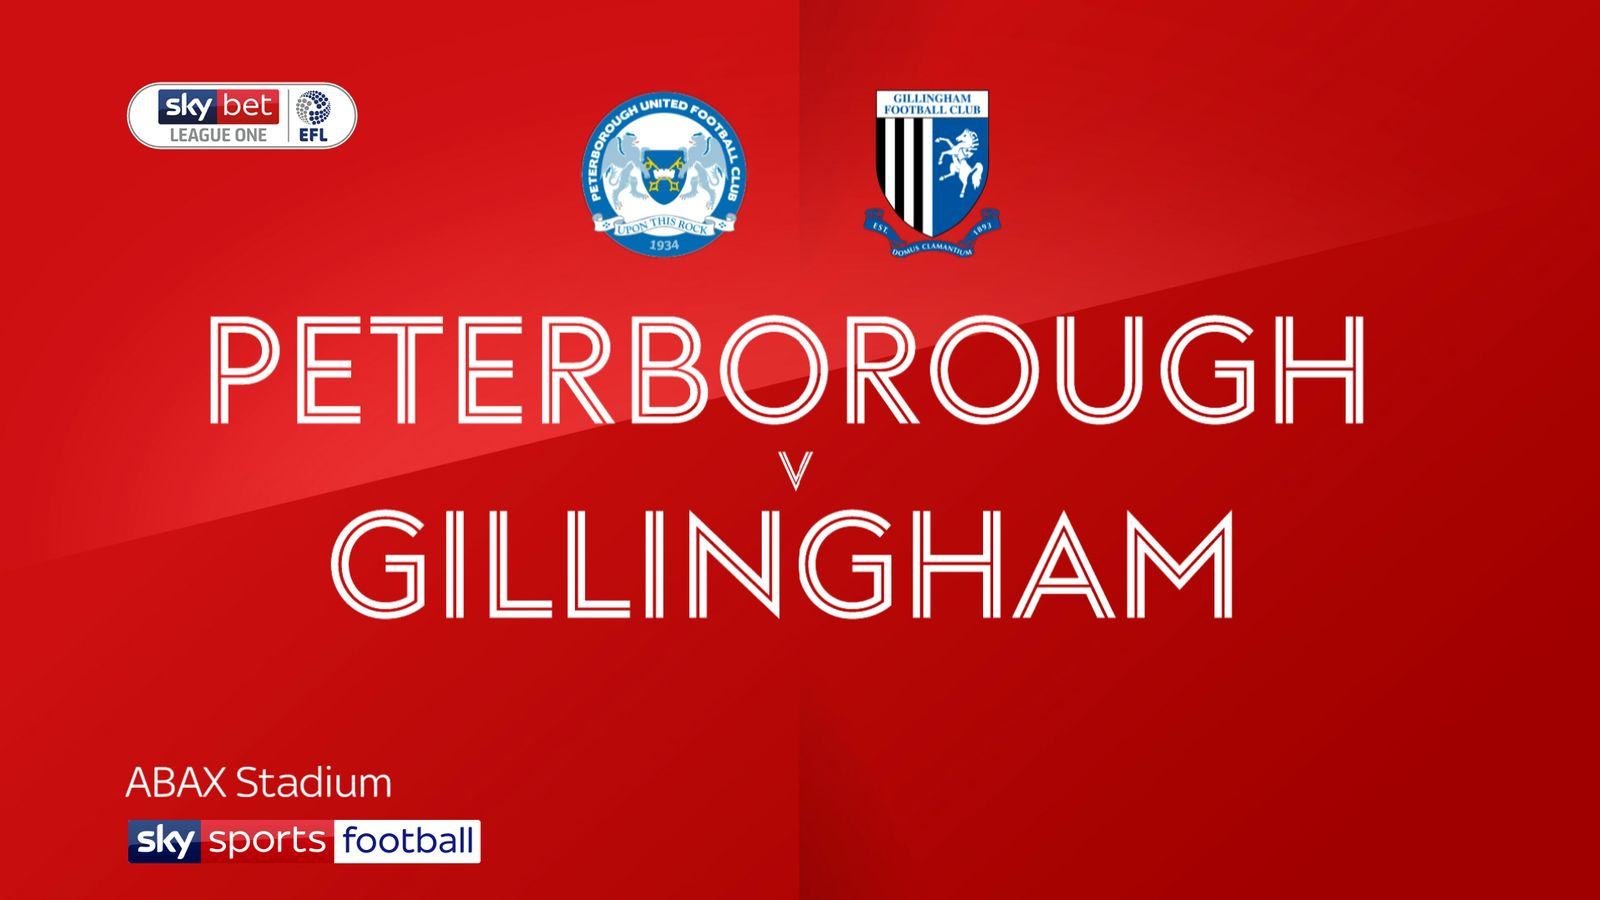 Peterborough 0-0 Gillingham: Gills extend unbeaten run with draw